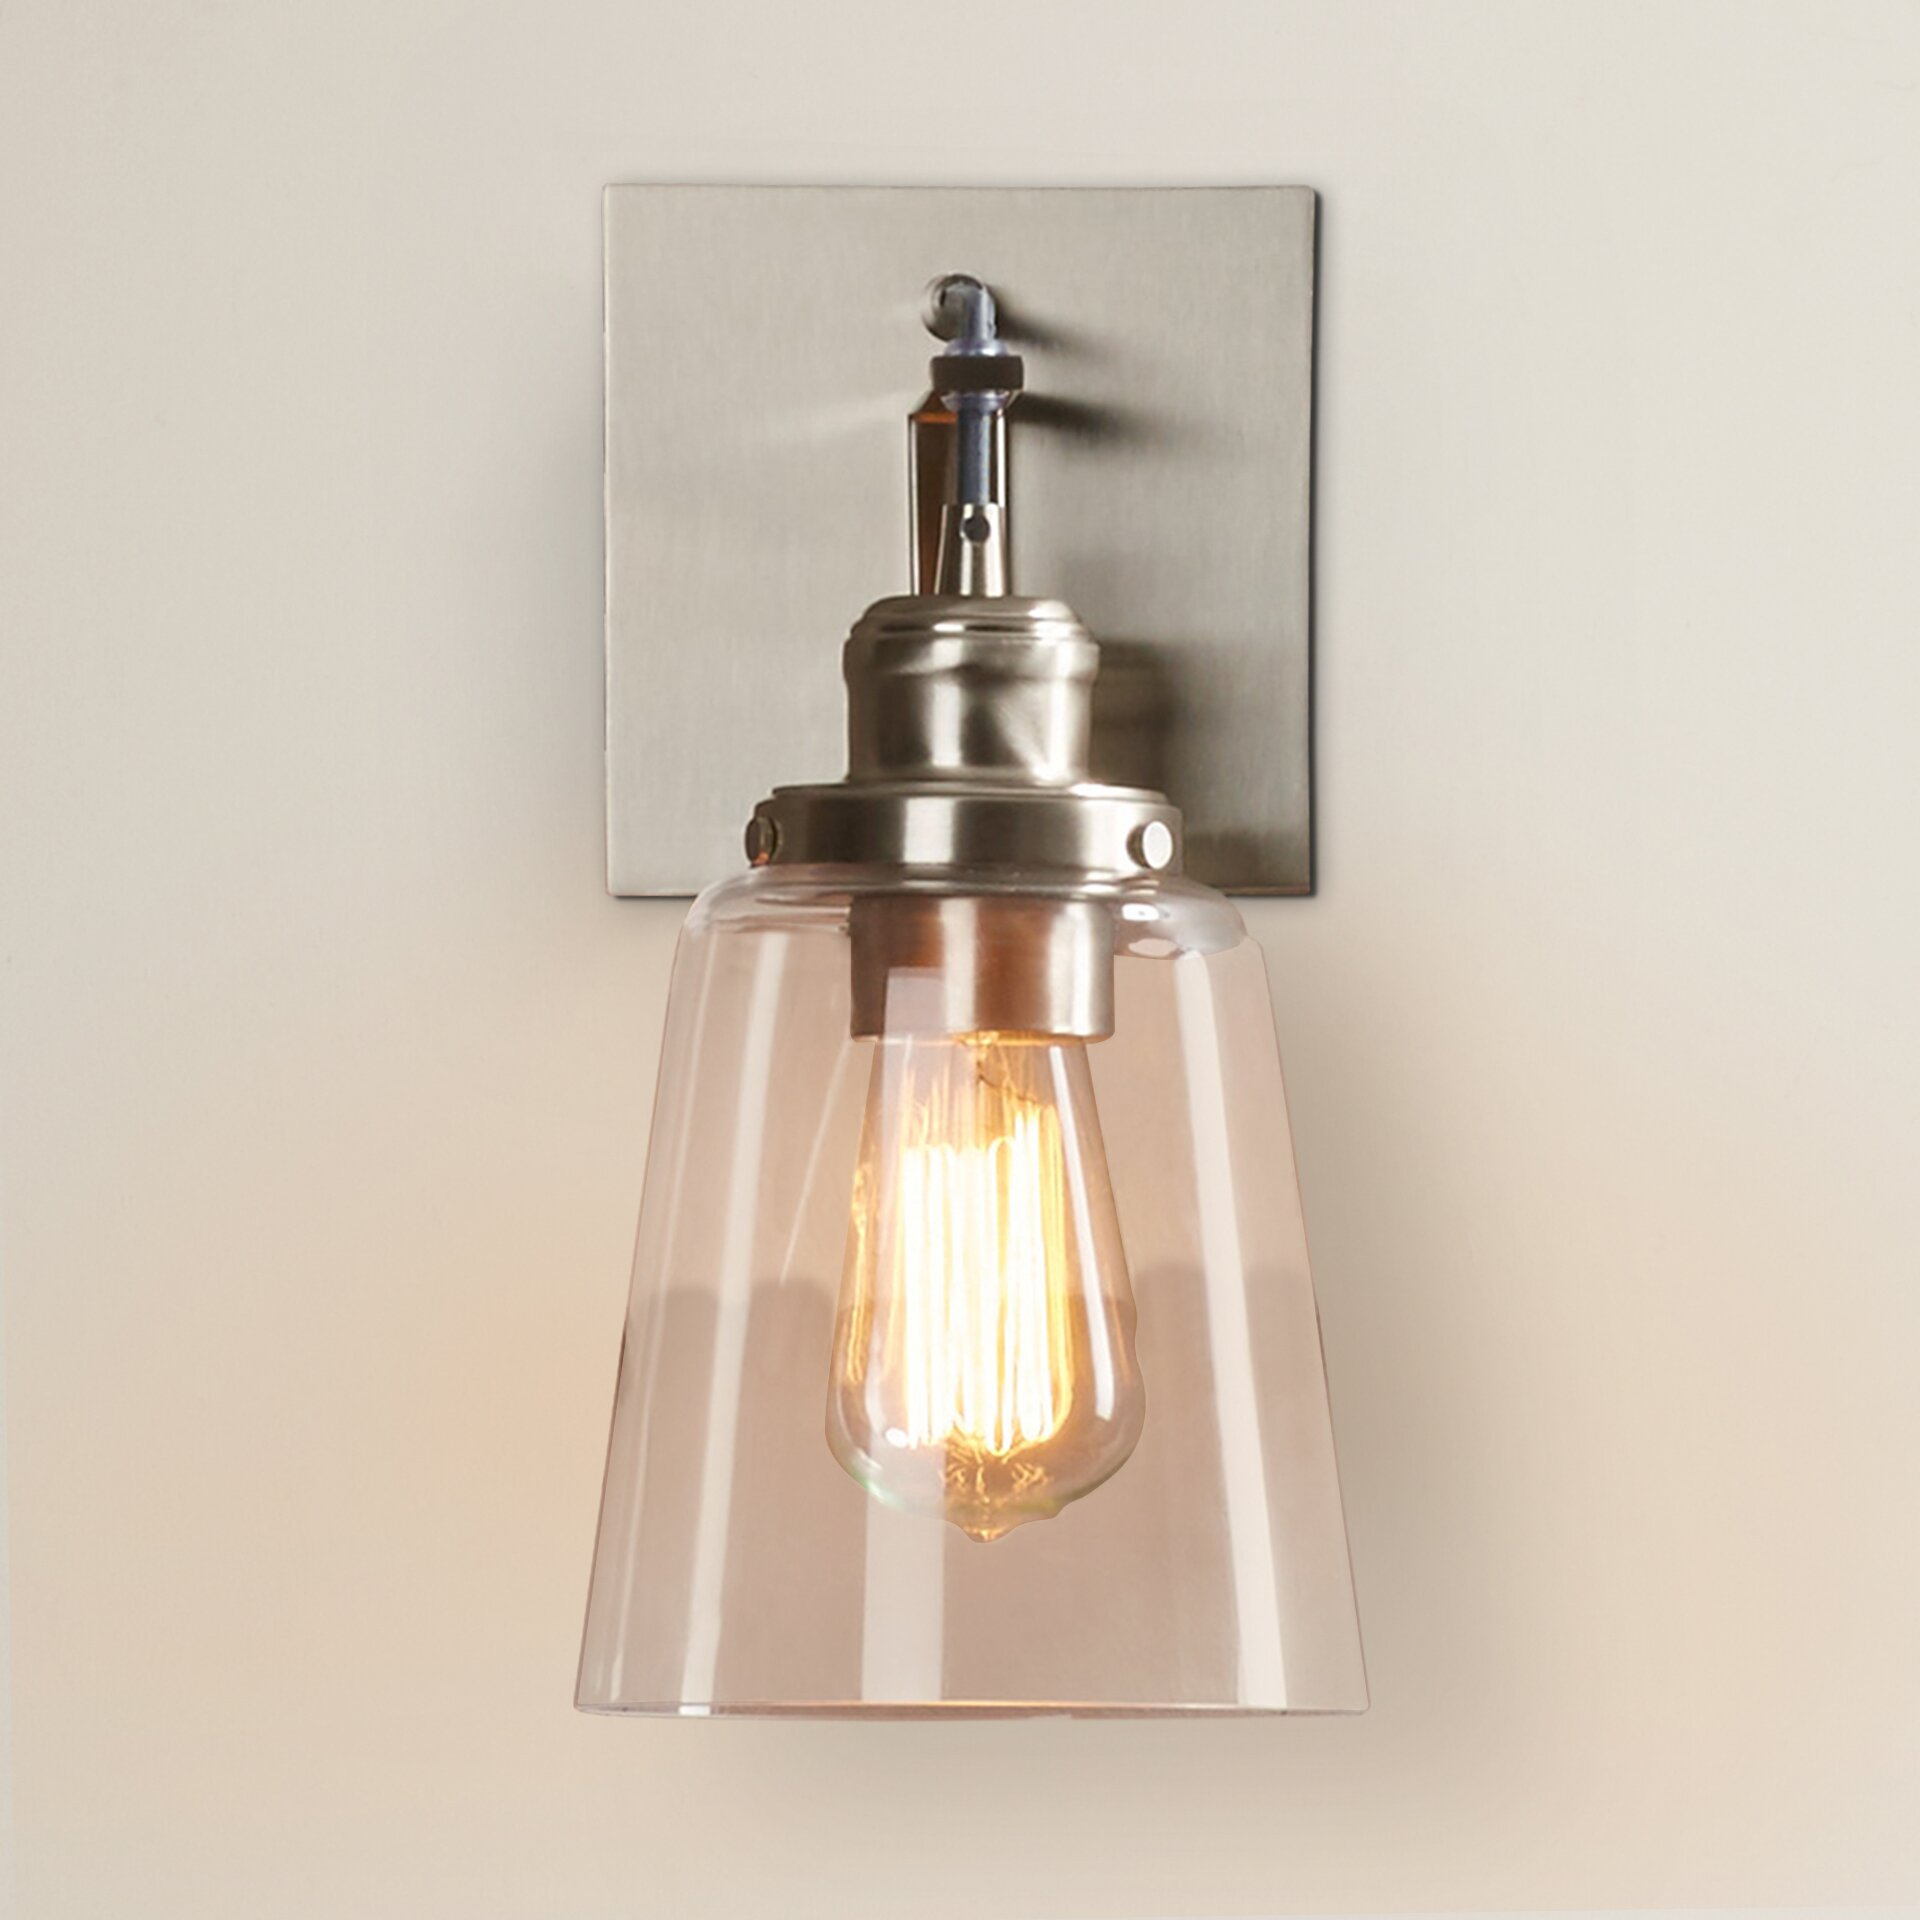 Wall Sconces At Wayfair : Trent Austin Design Knapp 1 Light Wall Sconce & Reviews Wayfair